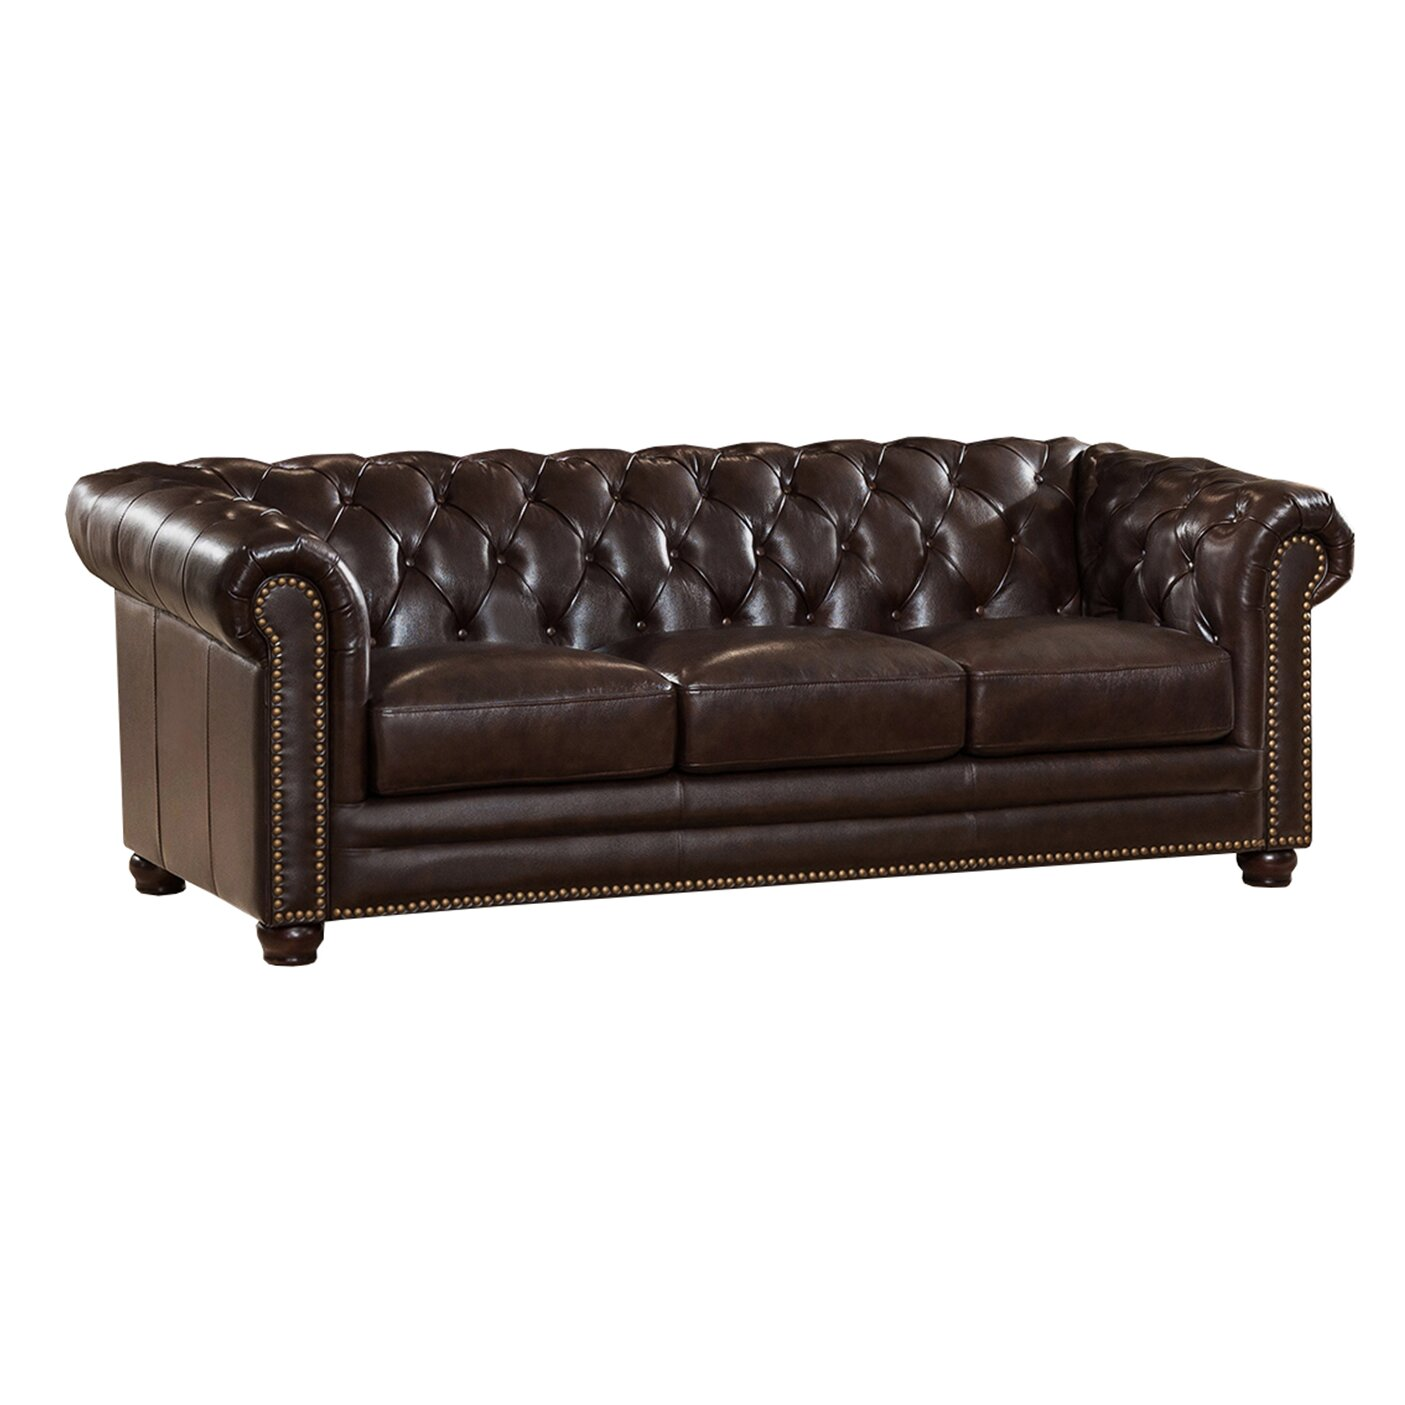 Amax kensington top grain leather chesterfield sofa and for Sofa loveseat and chair set